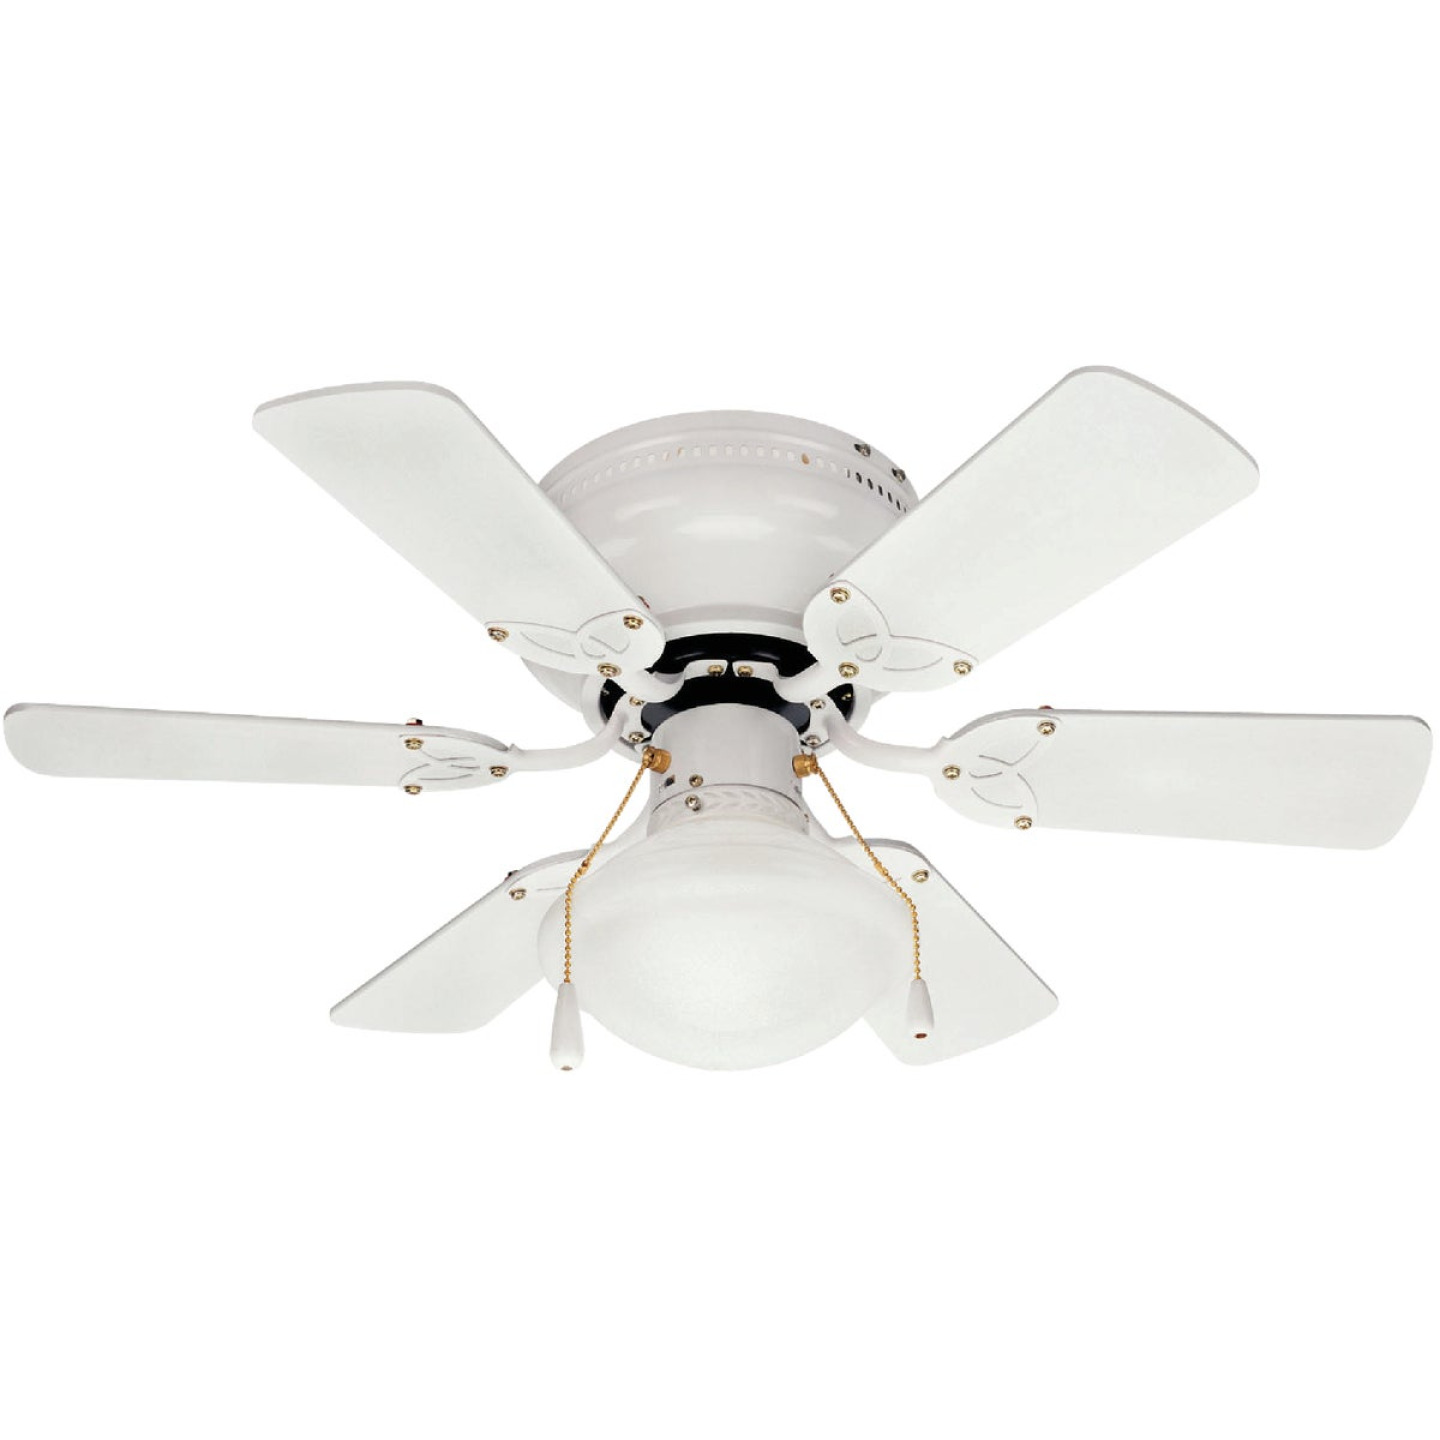 Home Impressions Twister 30 In. White Ceiling Fan with Light Kit Image 1